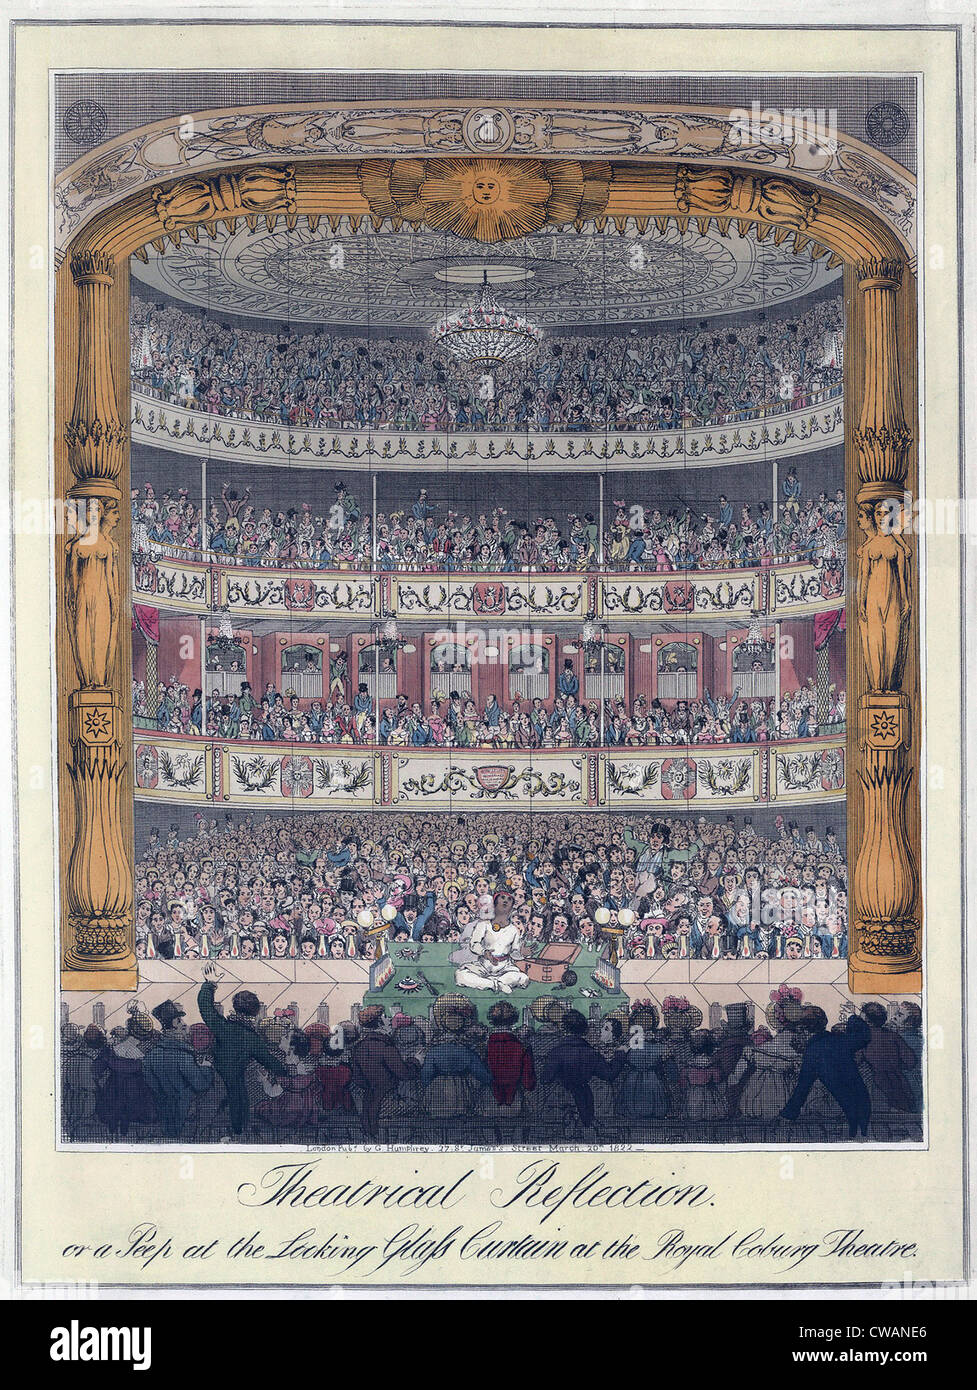 The Royal Coburg Theatre and audience in 1822.  The Theater was renamed 'Royal Victoria' in 1833, but was - Stock Image